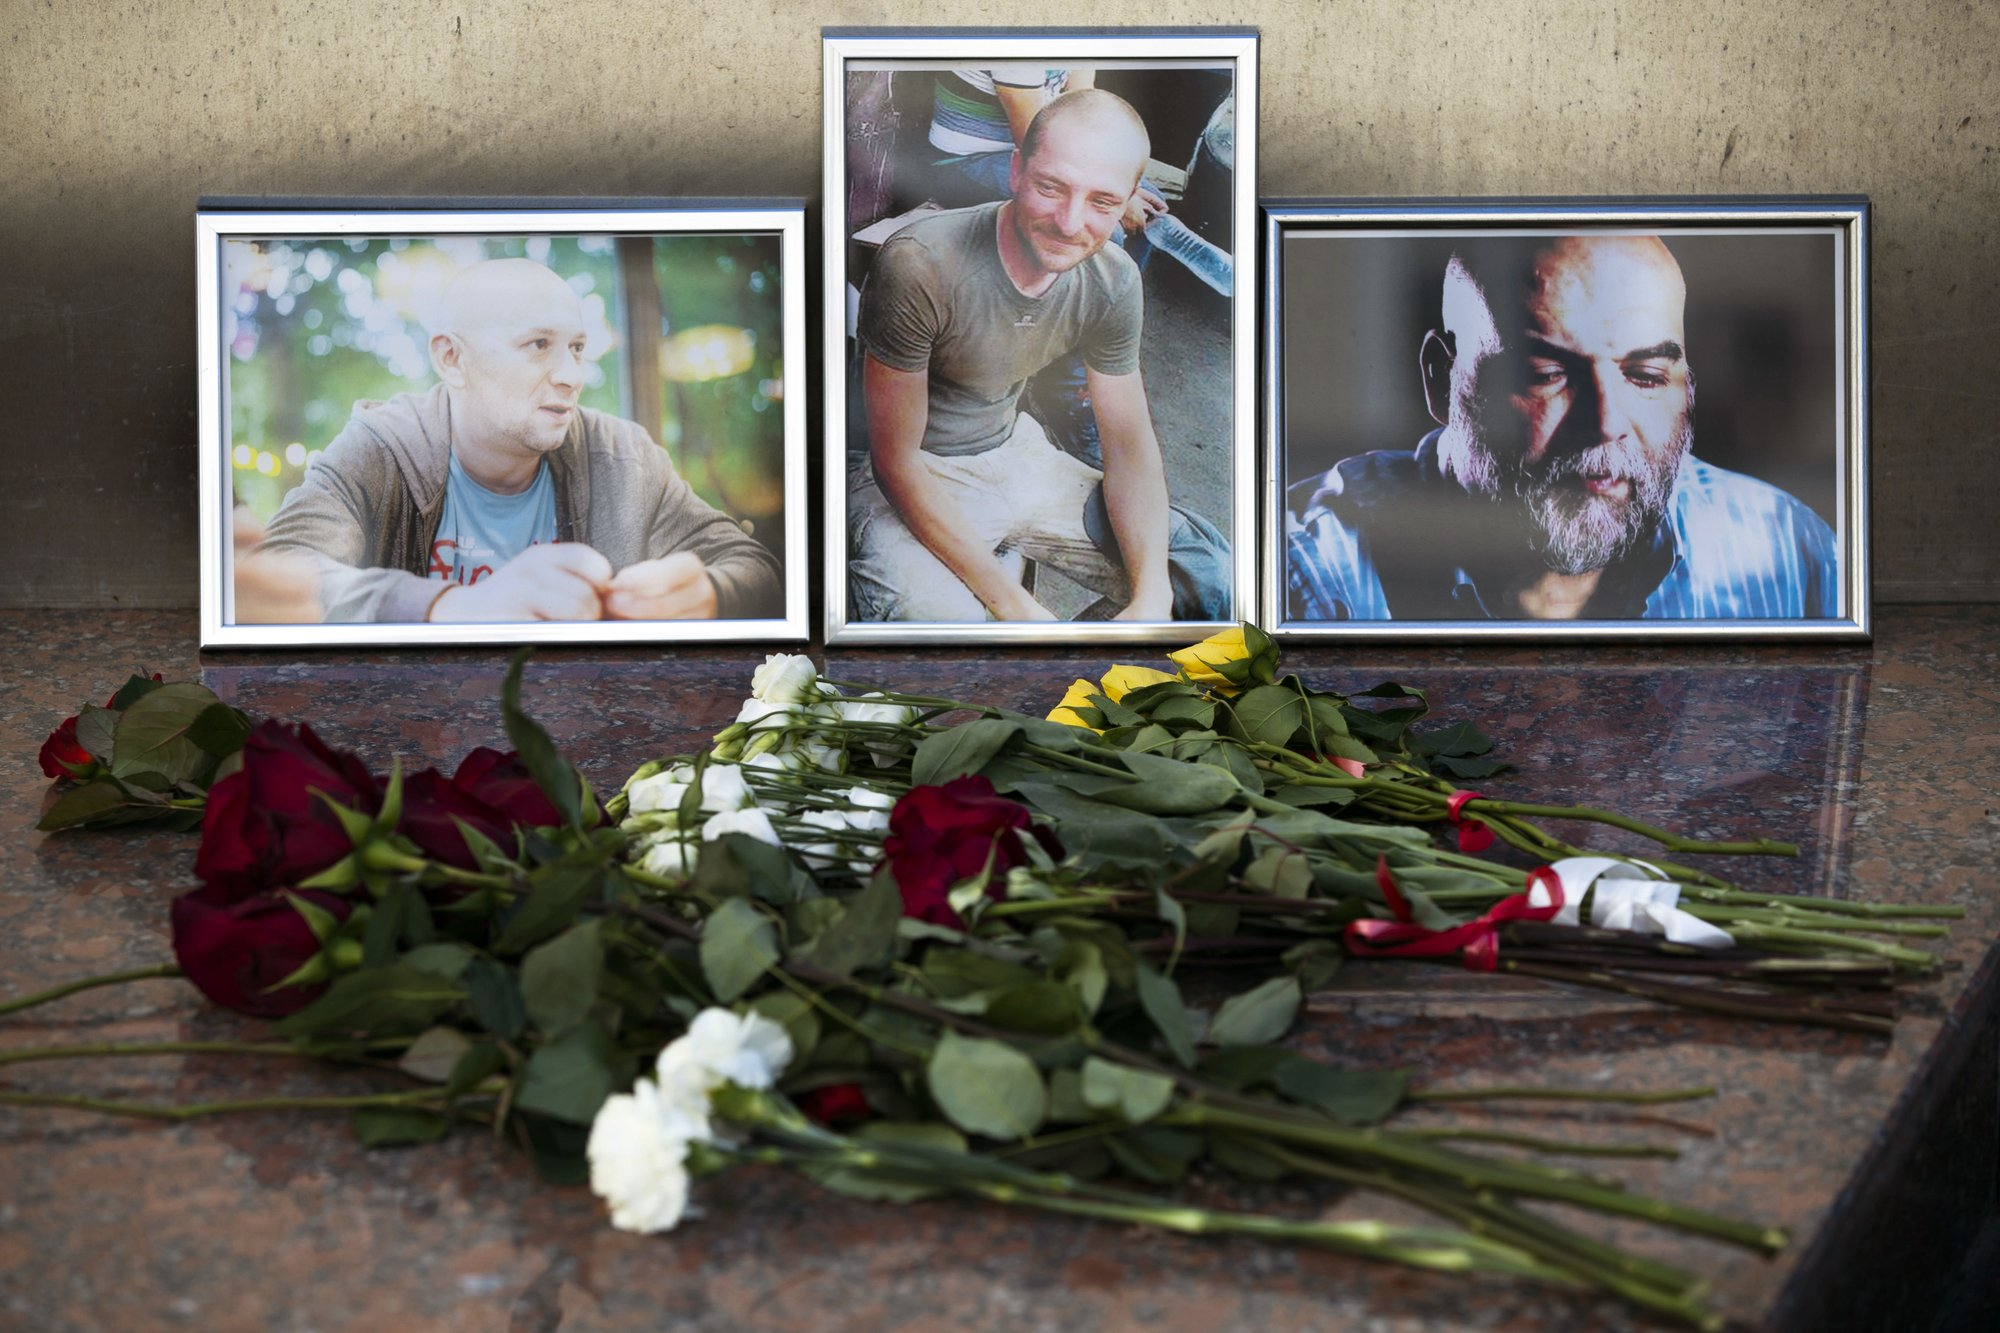 Russia says reporters killed in Africa were not tortured